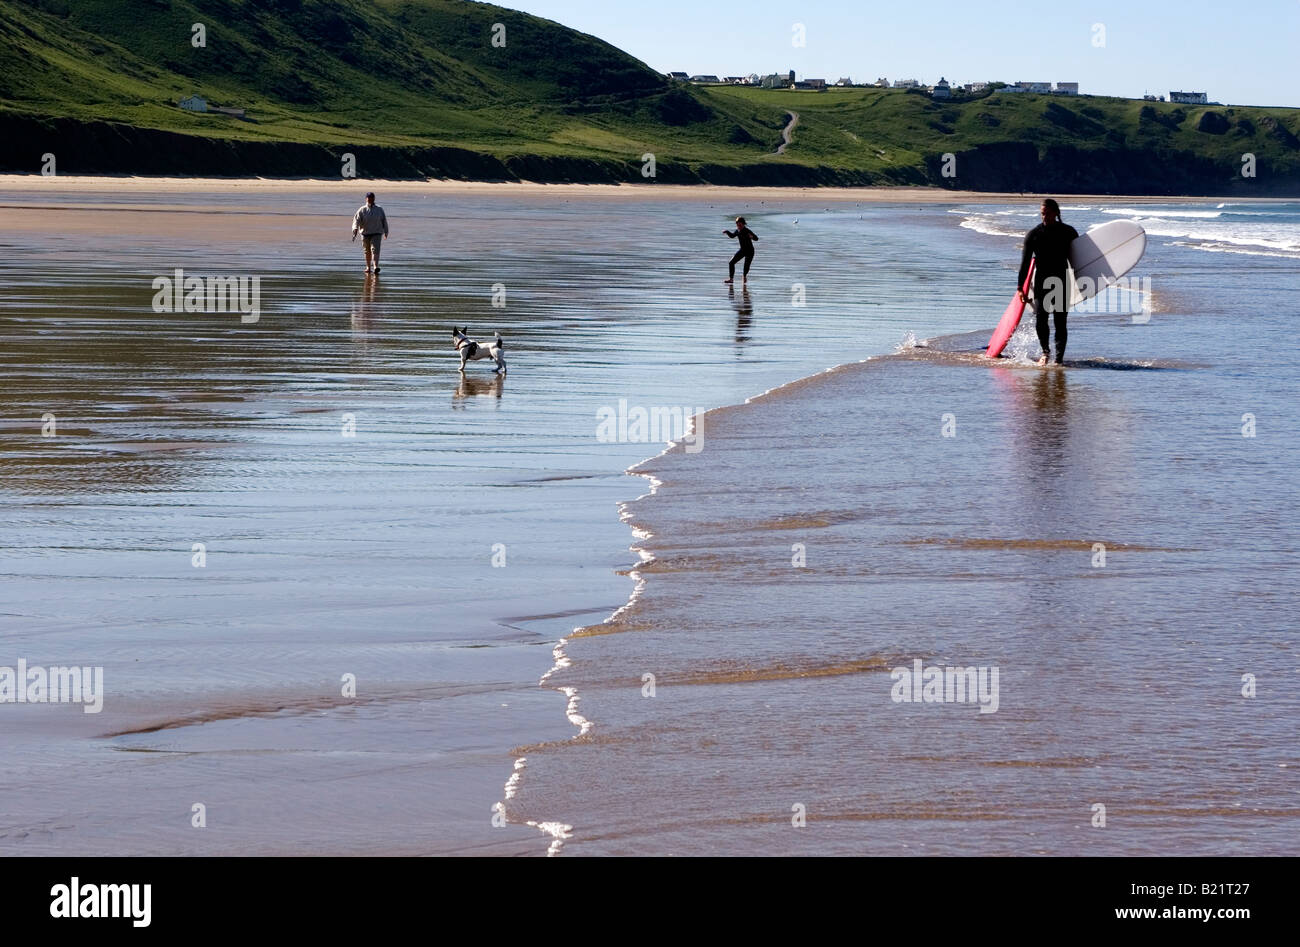 A surfer and his family & dog walk down the beach on the beautiful bay of Rhossili near Llangennith, Gower Peninsular, - Stock Image